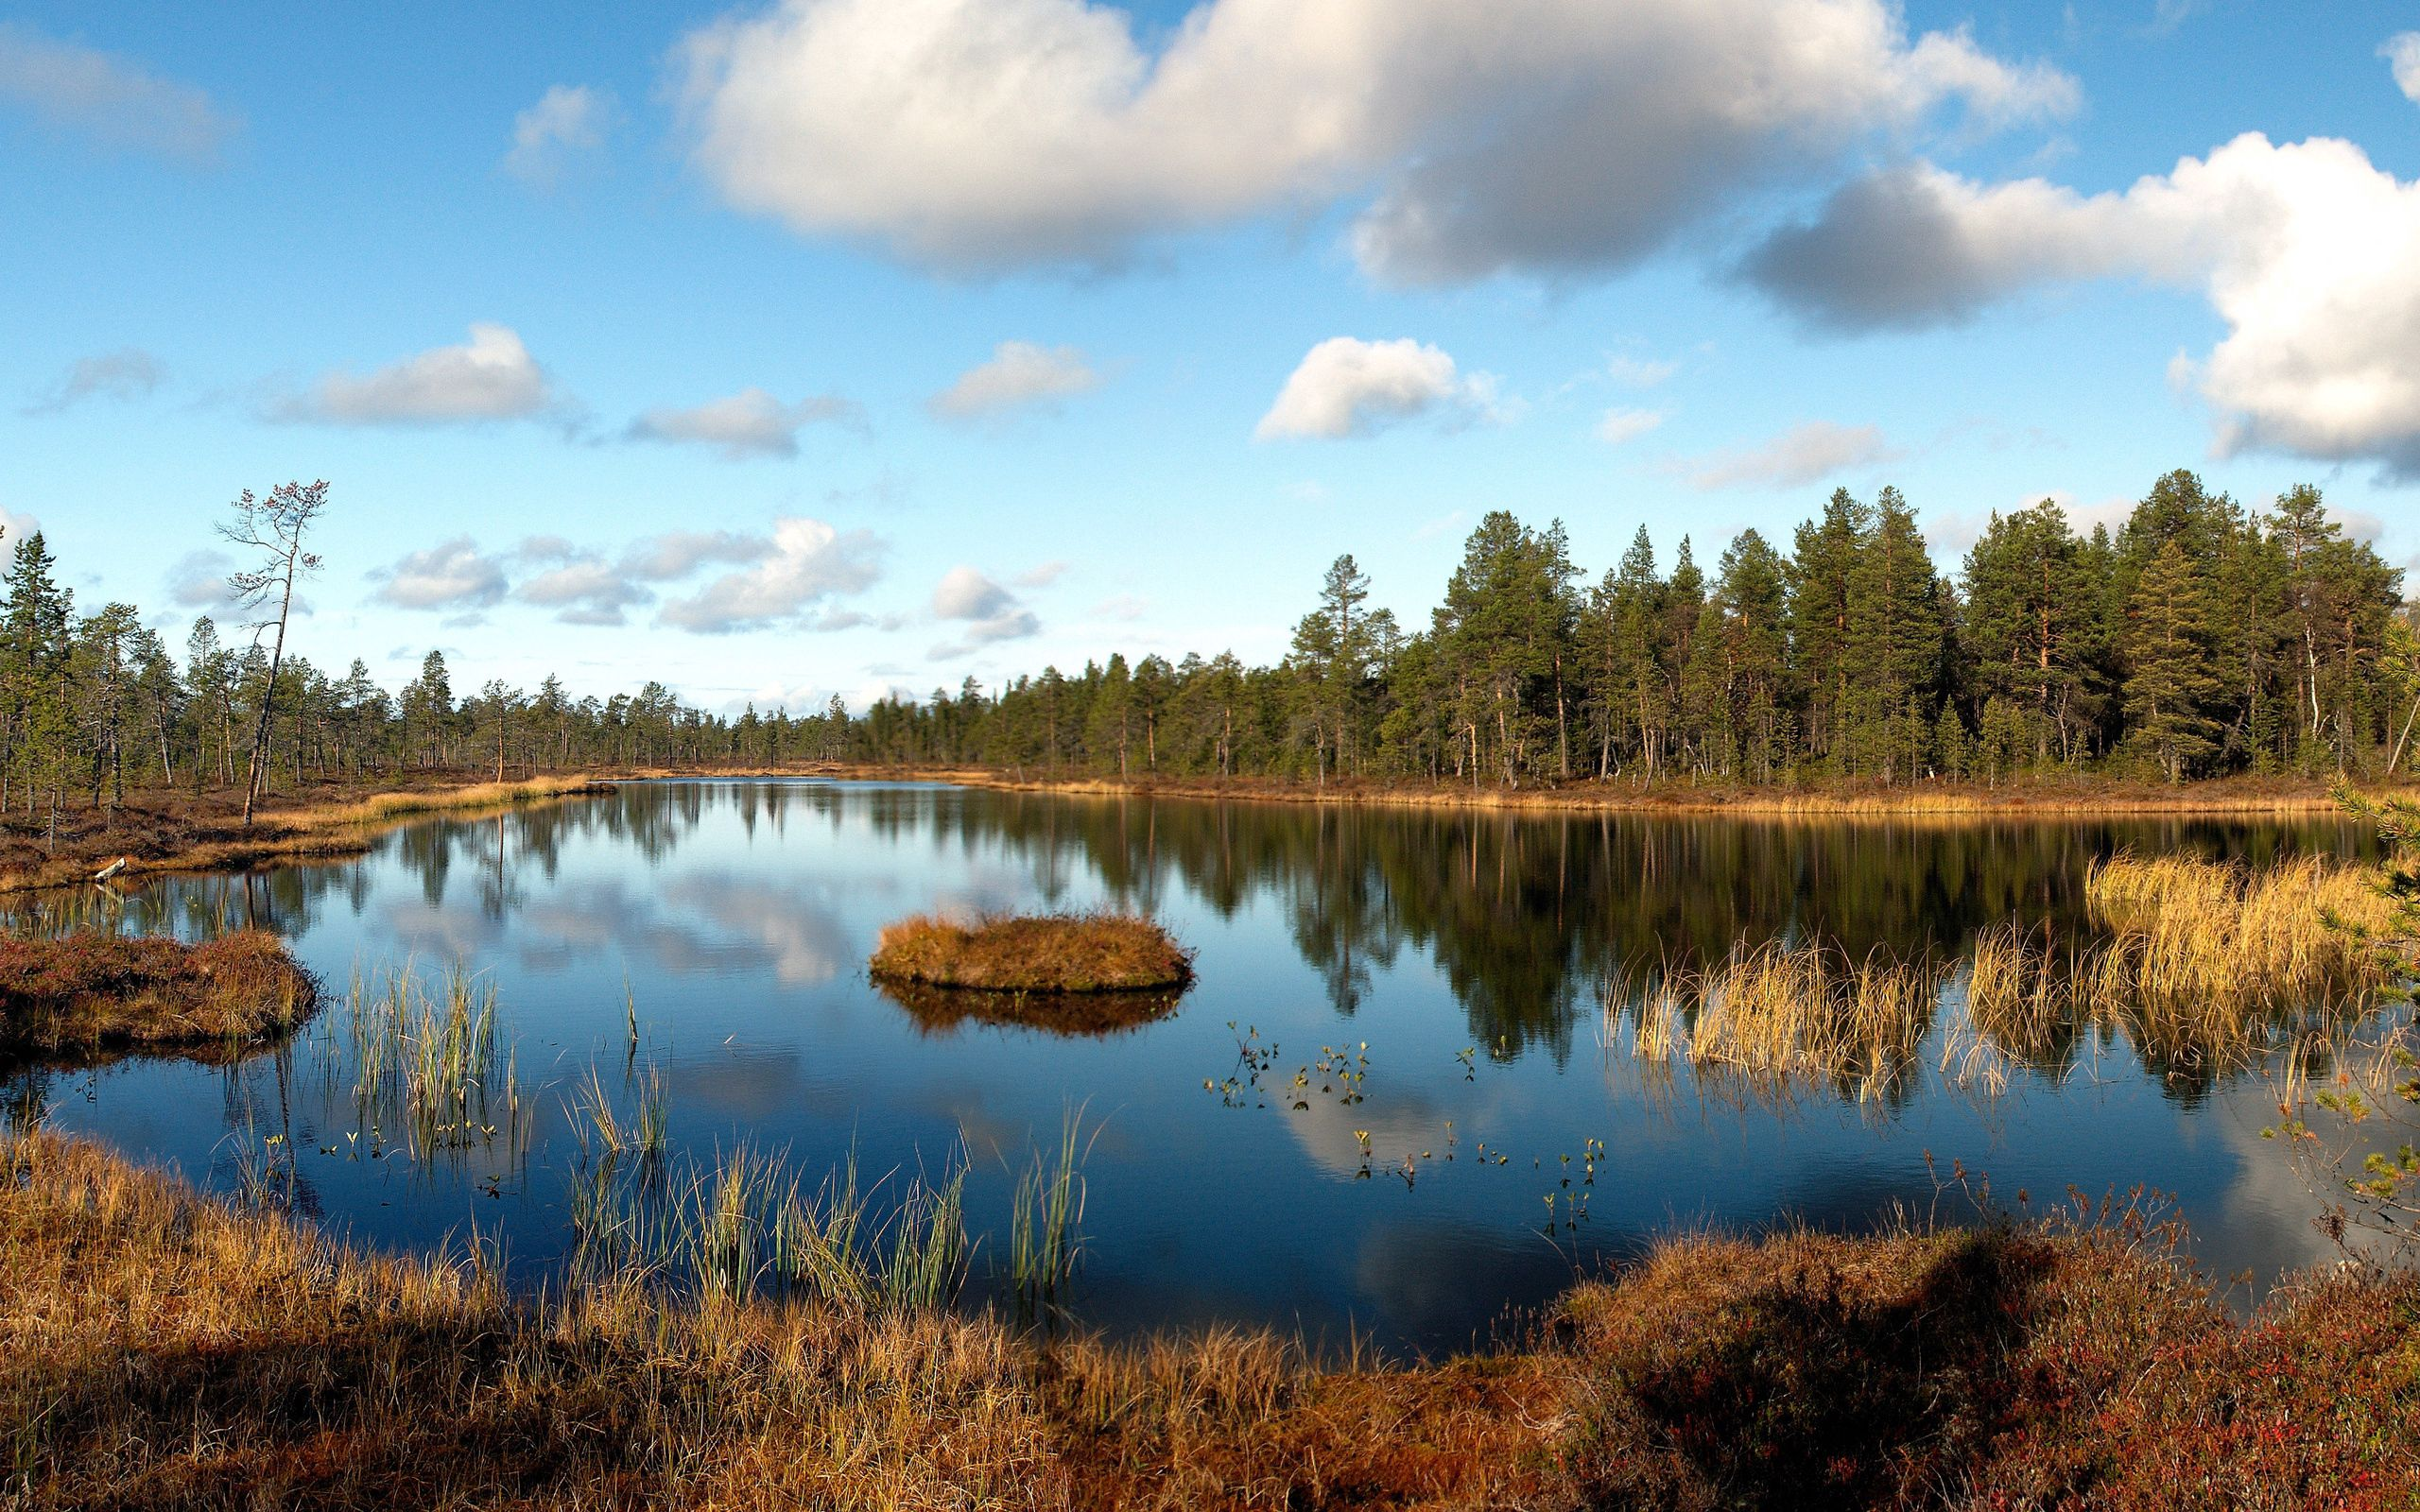 156310 Screensavers and Wallpapers Landscape for phone. Download Nature, Forest, Grass, Withered, It's A Sly, Lake, Autumn, Island, Islet, Shadows, Clouds, Reflection, October, Landscape pictures for free